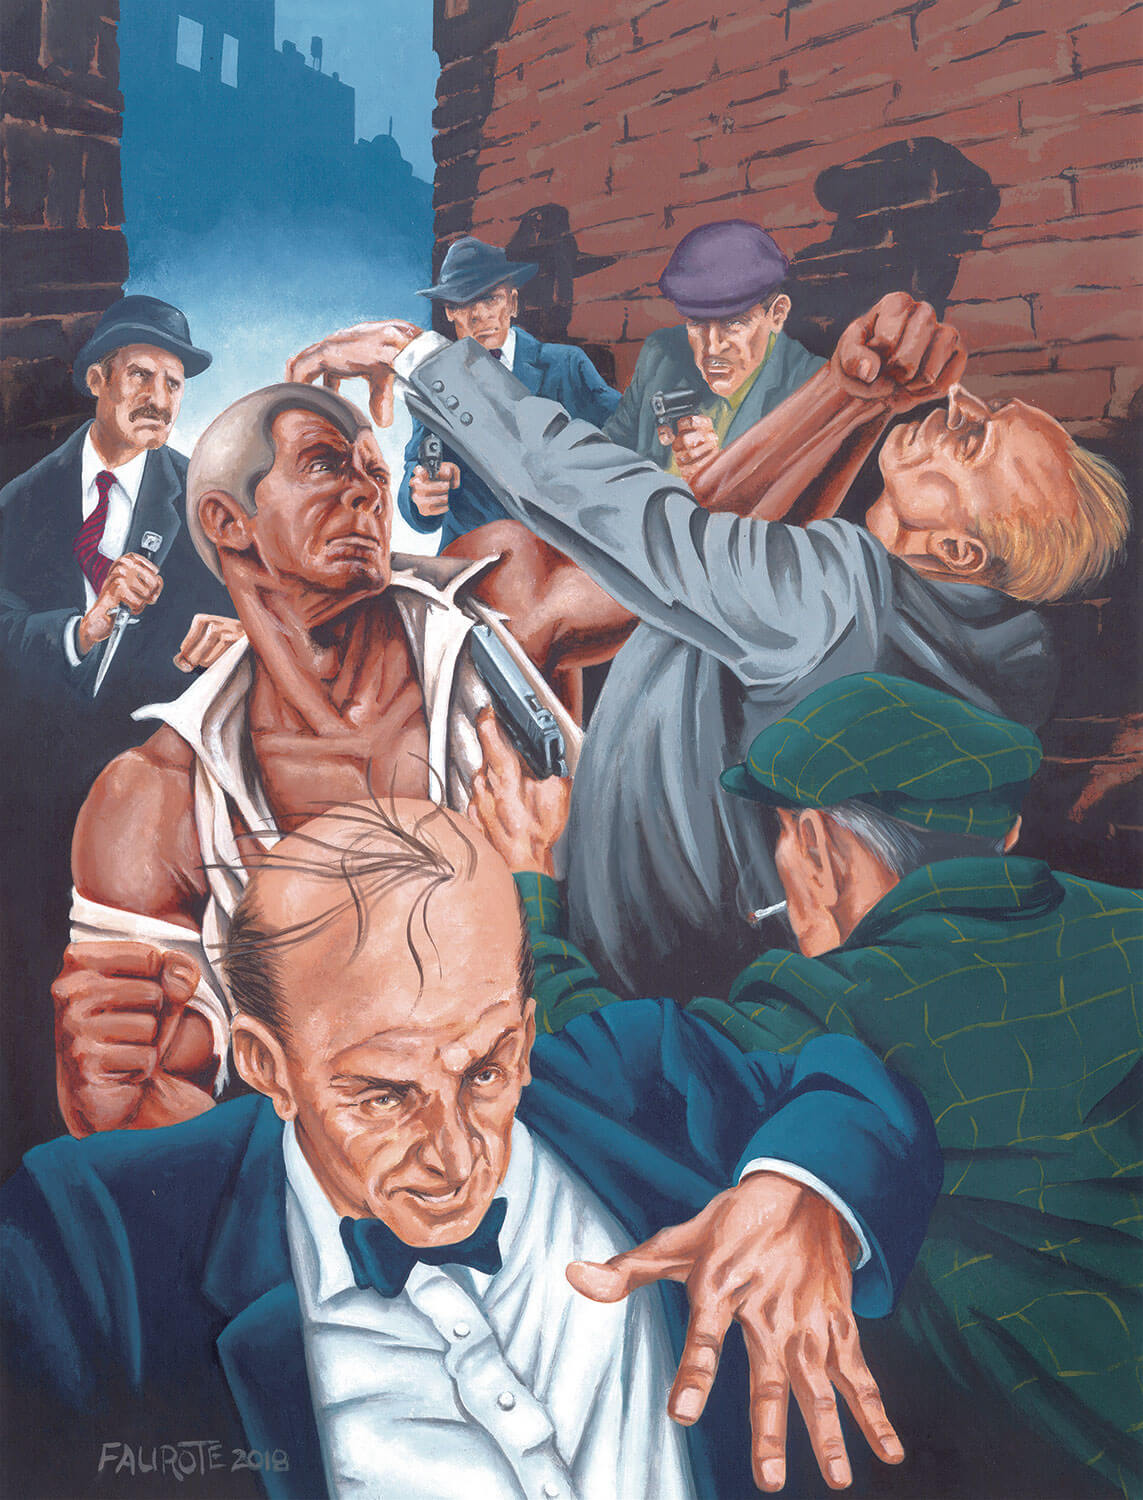 Tim Faurote Doc Savage magazine illustration